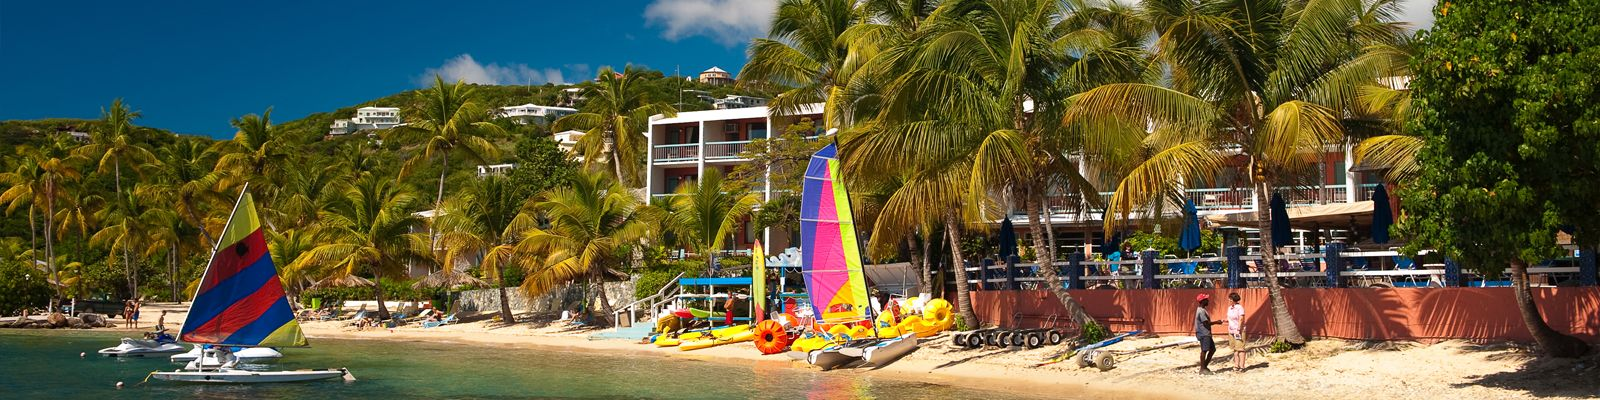 Bolongo Bay Beach Resort - St Thomas, US Virgin Islands